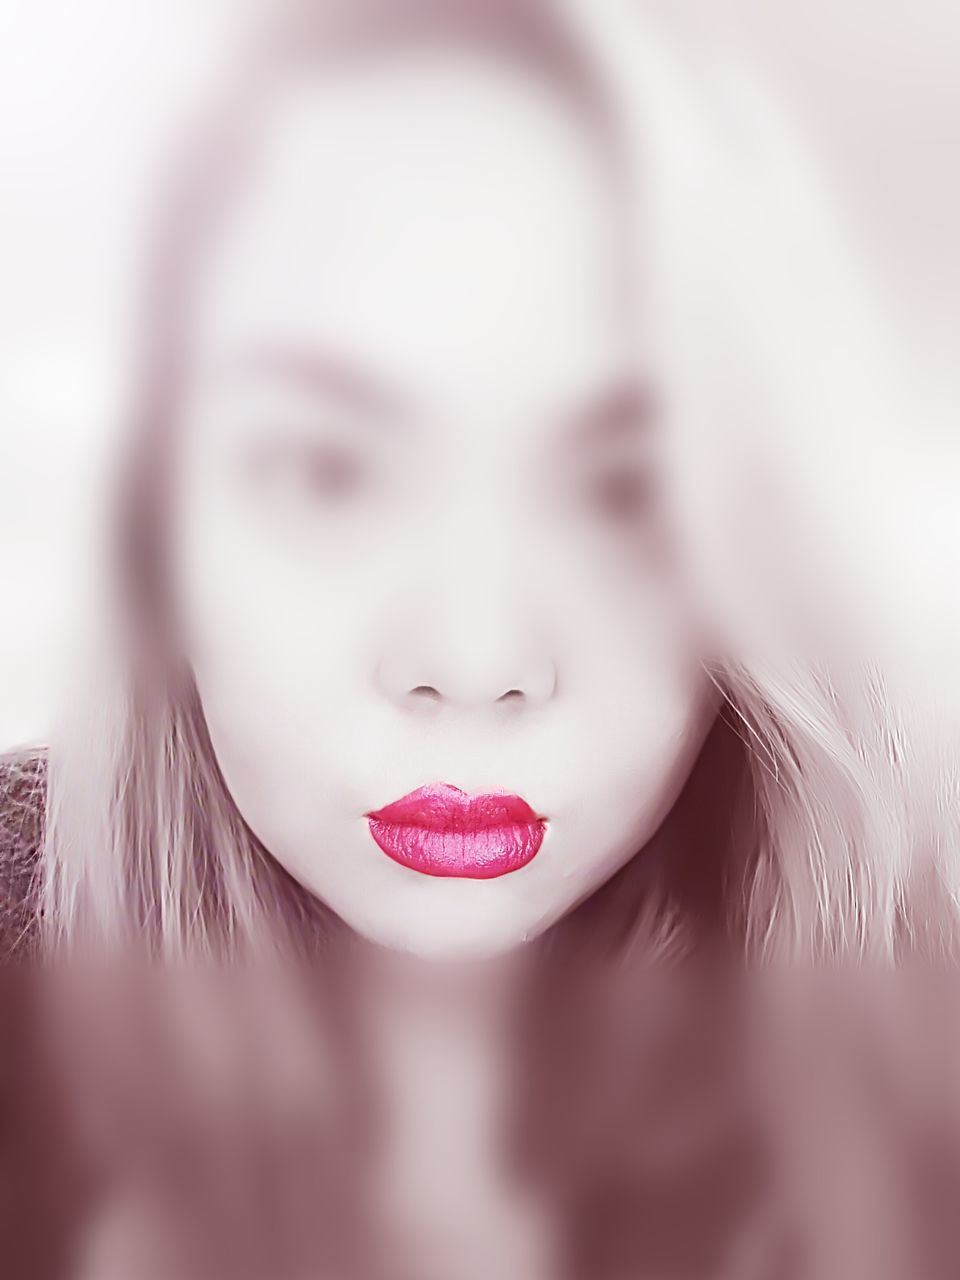 one person, real people, young adult, young women, close-up, day, outdoors, red lipstick, human lips, people